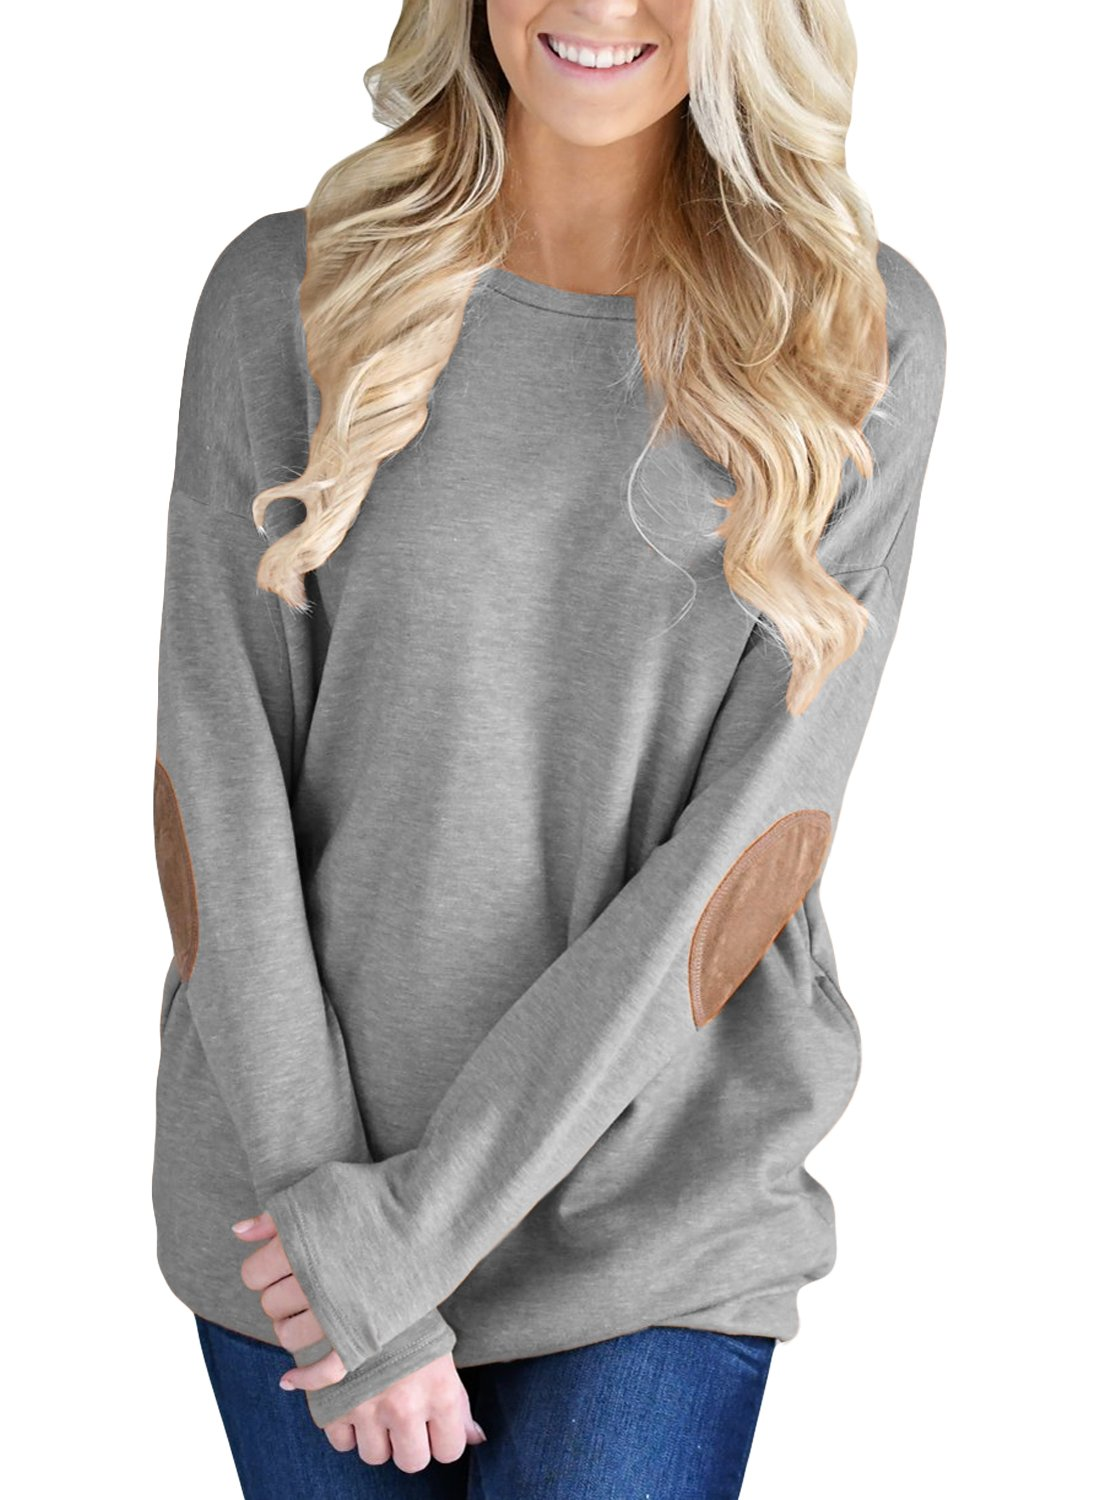 FARYSAYS Women's Casual Loose Long Sleeve Crewneck Elbow Patch Sweatshirt Tunic Tops